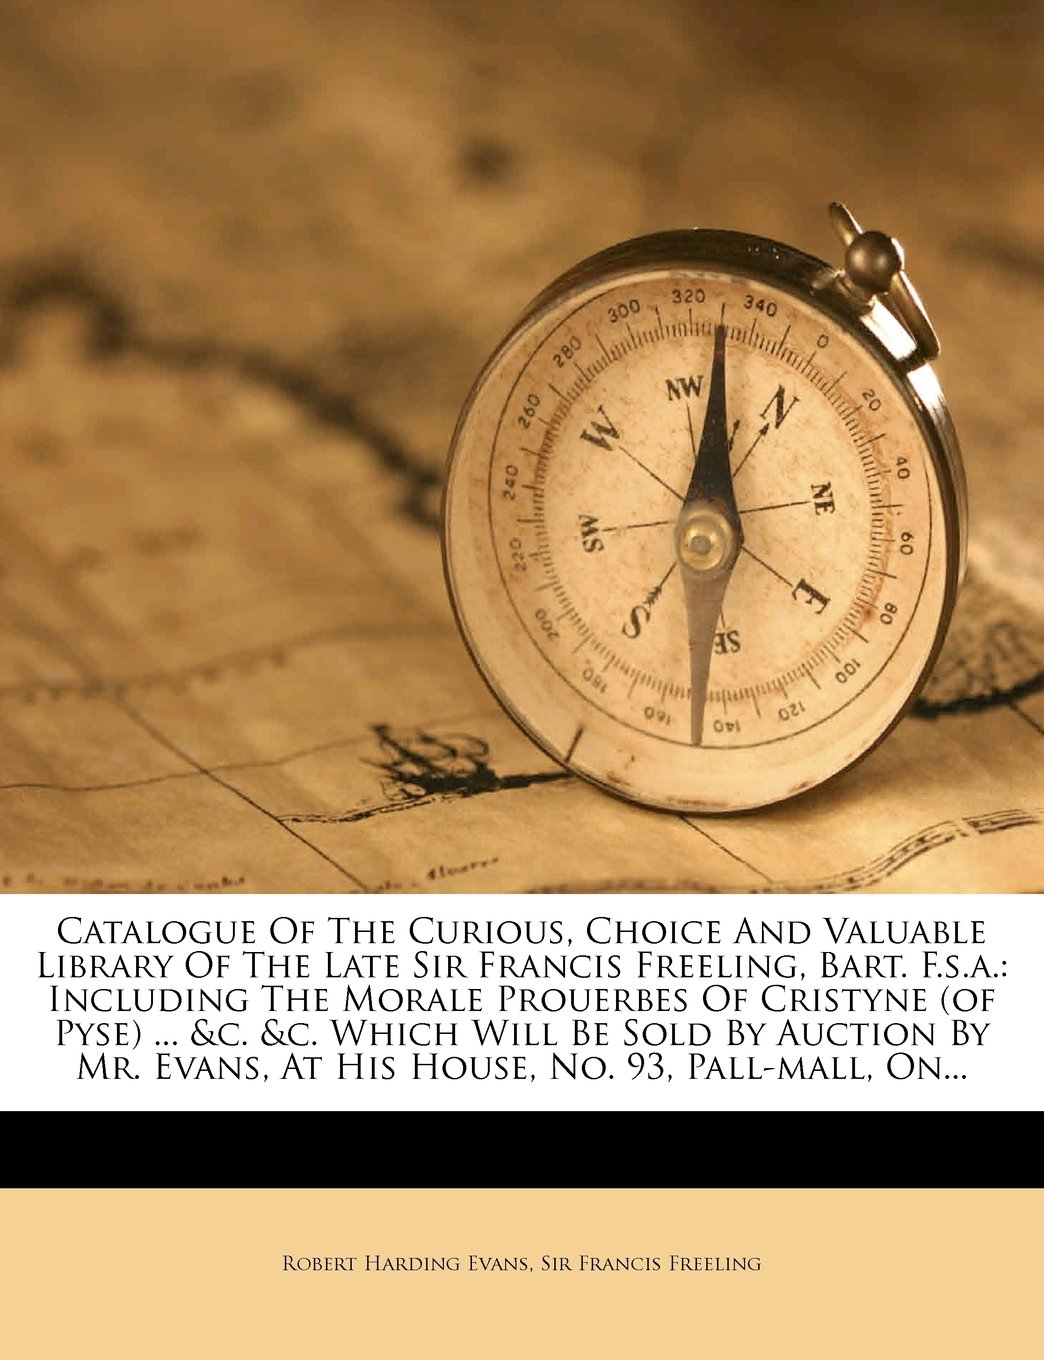 Read Online Catalogue Of The Curious, Choice And Valuable Library Of The Late Sir Francis Freeling, Bart. F.s.a.: Including The Morale Prouerbes Of Cristyne (of ... Evans, At His House, No. 93, Pall-mall, On... PDF